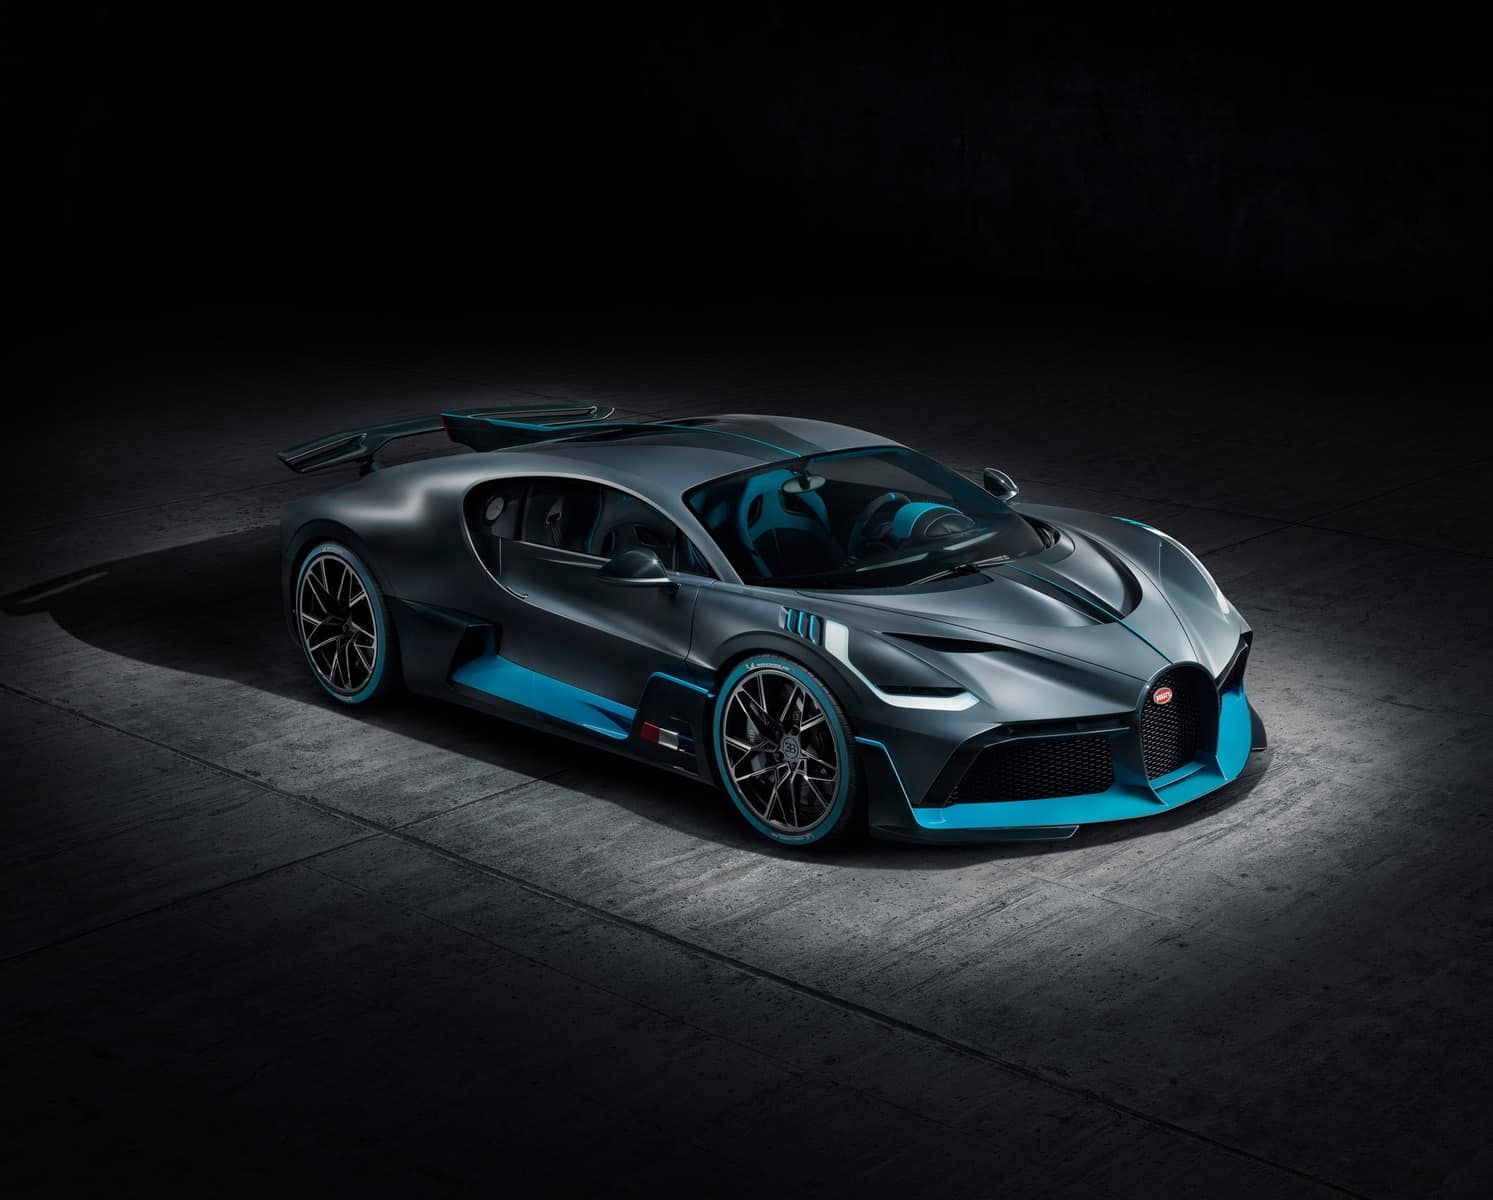 The 1 500 Hp Bugatti Divo Is The Best Looking Car We Ve Seen In Years Super Cars Bugatti Cars Good Looking Cars